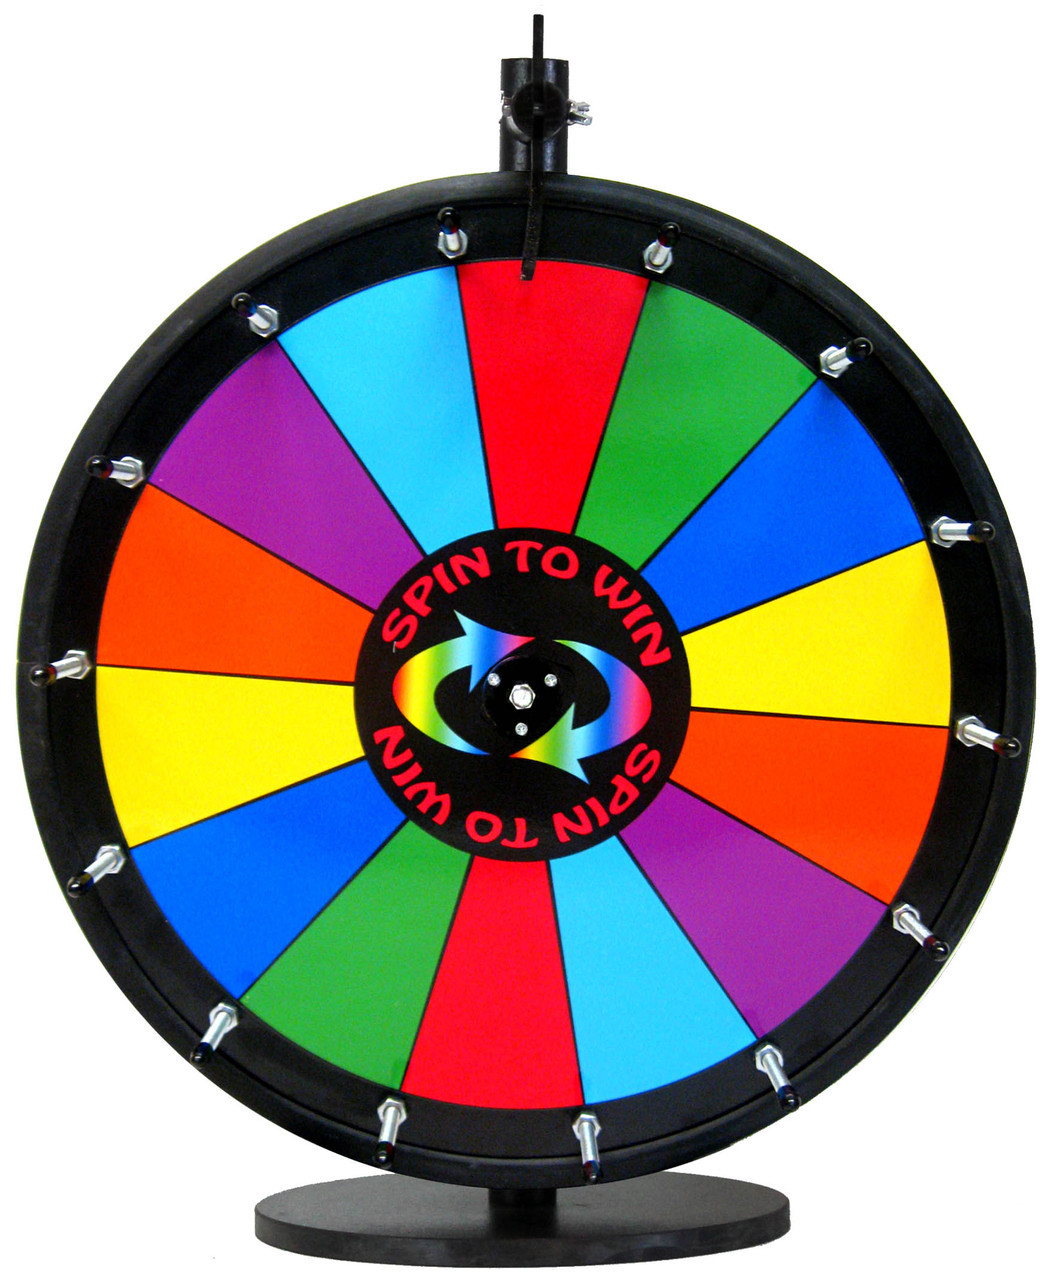 Spin To Win Game